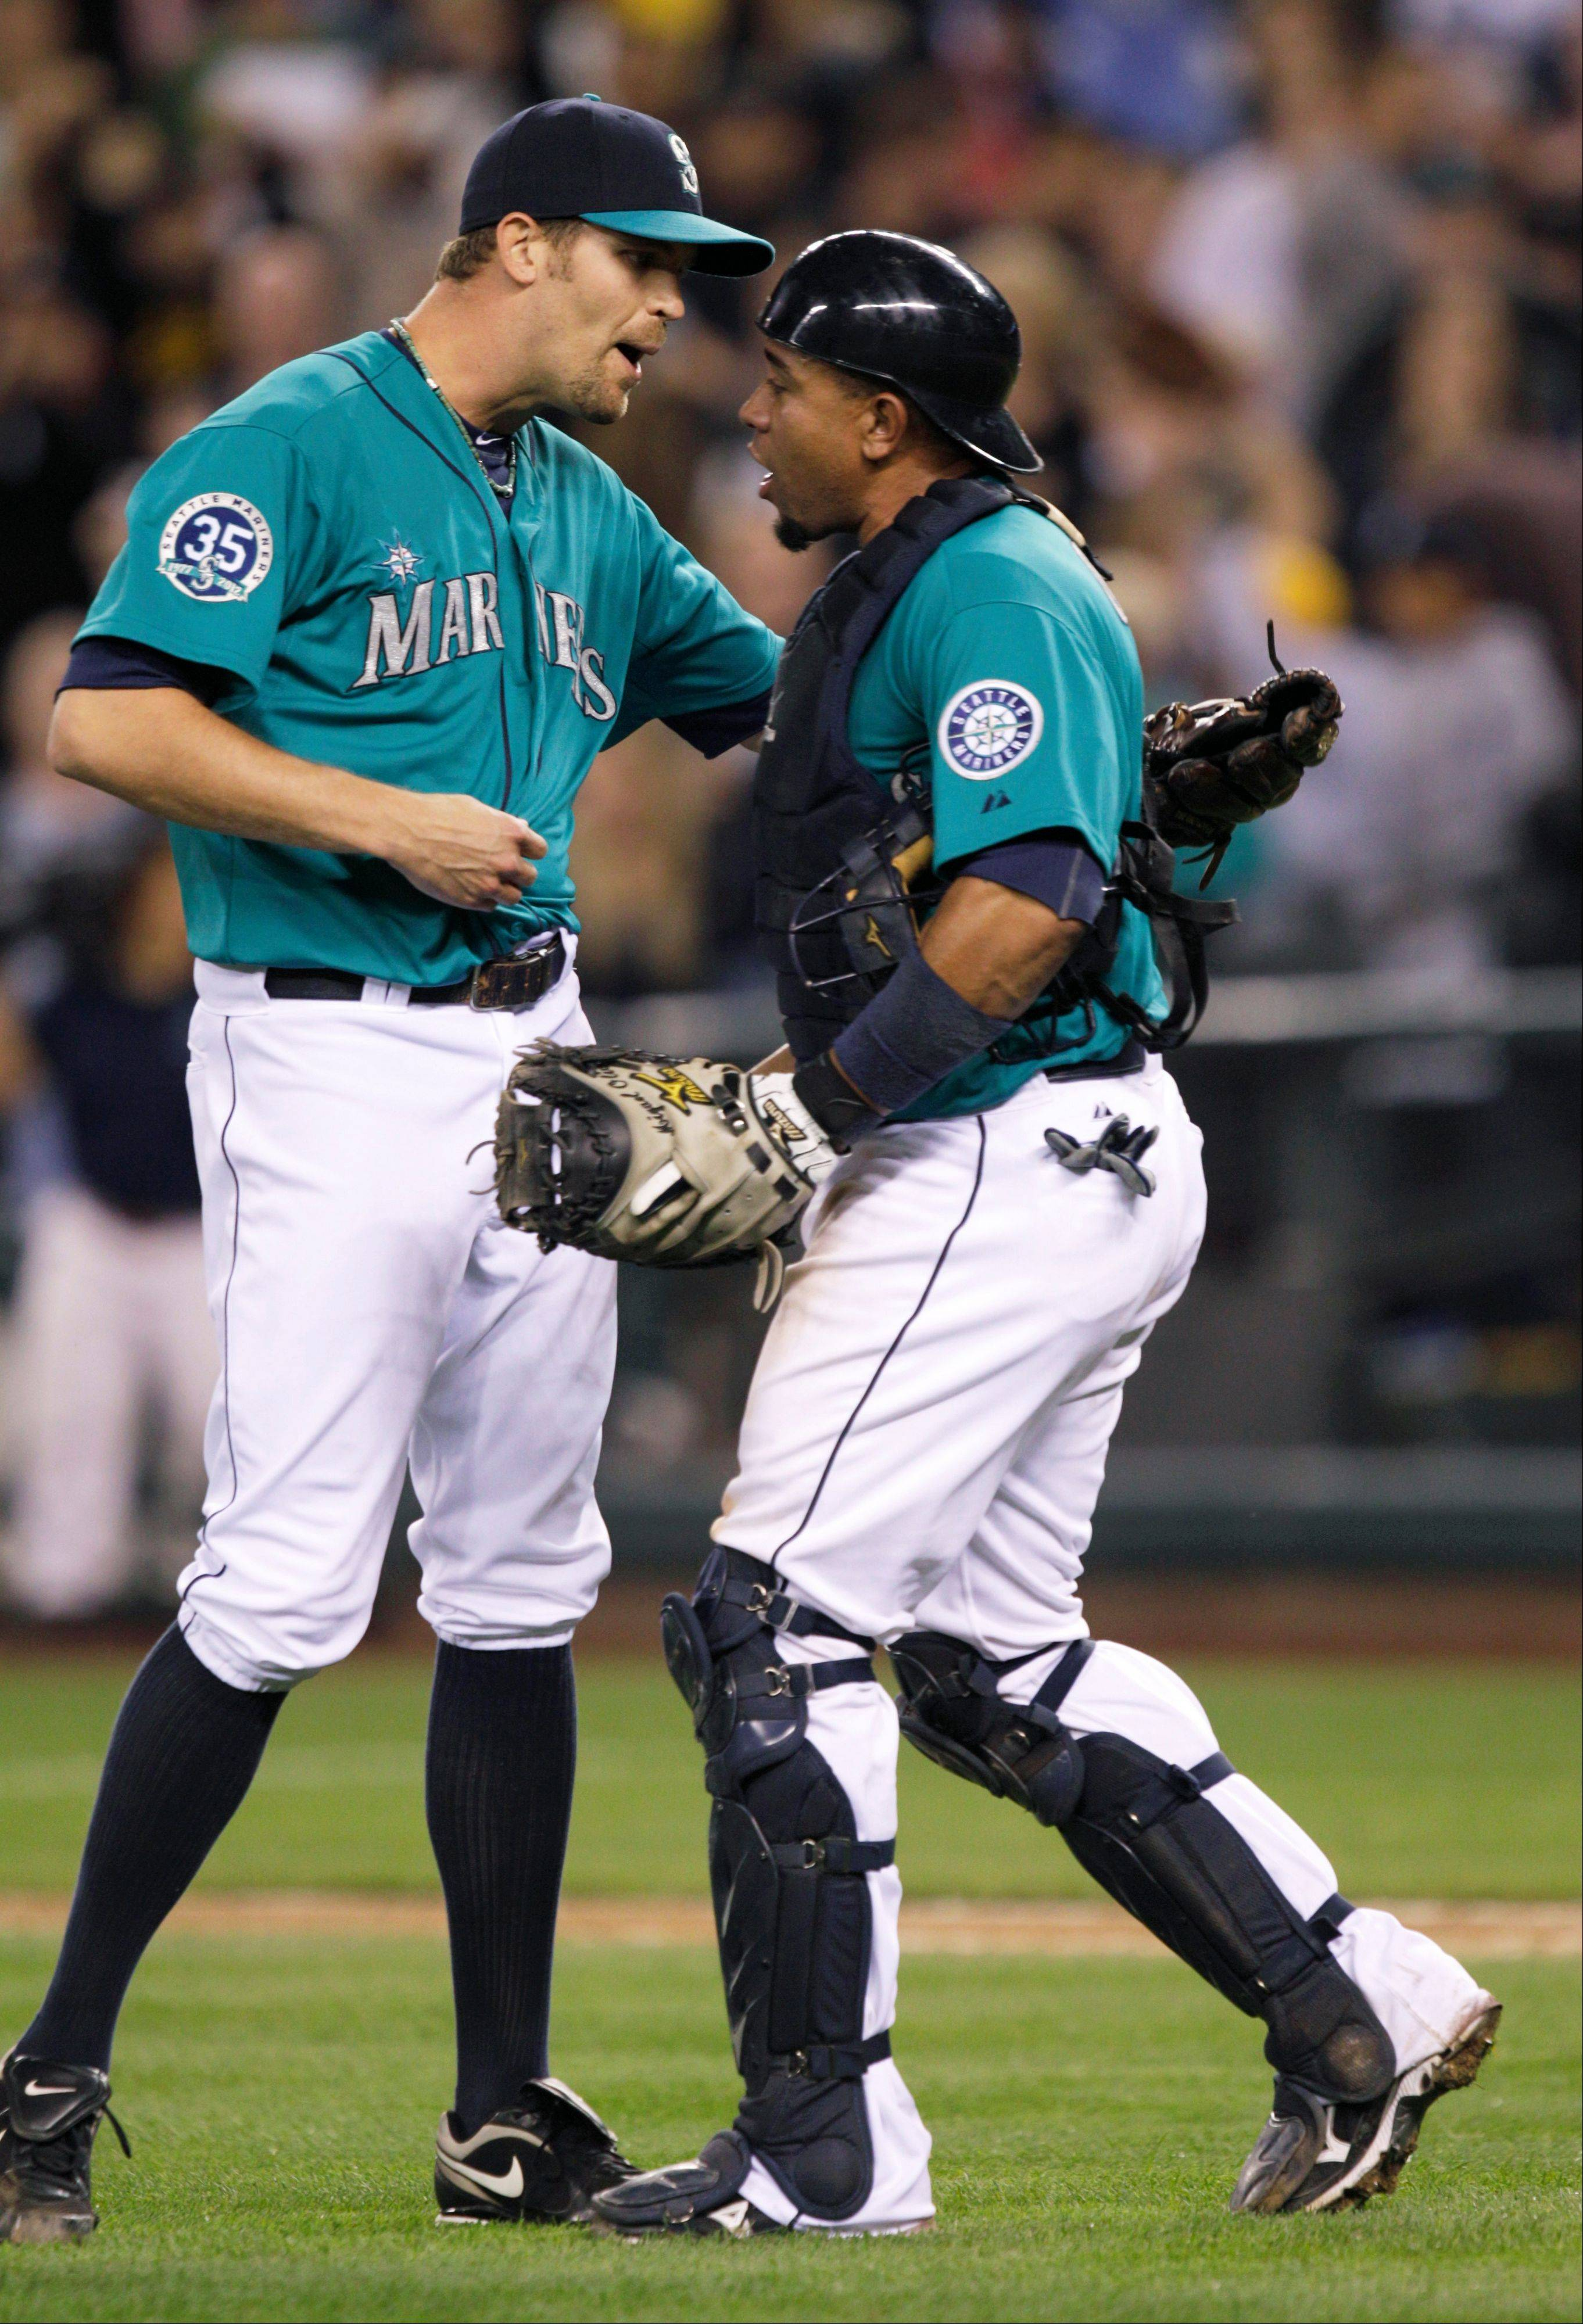 Catcher Miguel Olivo greets closer Tom Wilhelmsen after the Mariners beat the Texas Rangers 6-3 Friday in Seattle. Wilhelmsen earned the save, and Olivo had a two-run home run in the game.